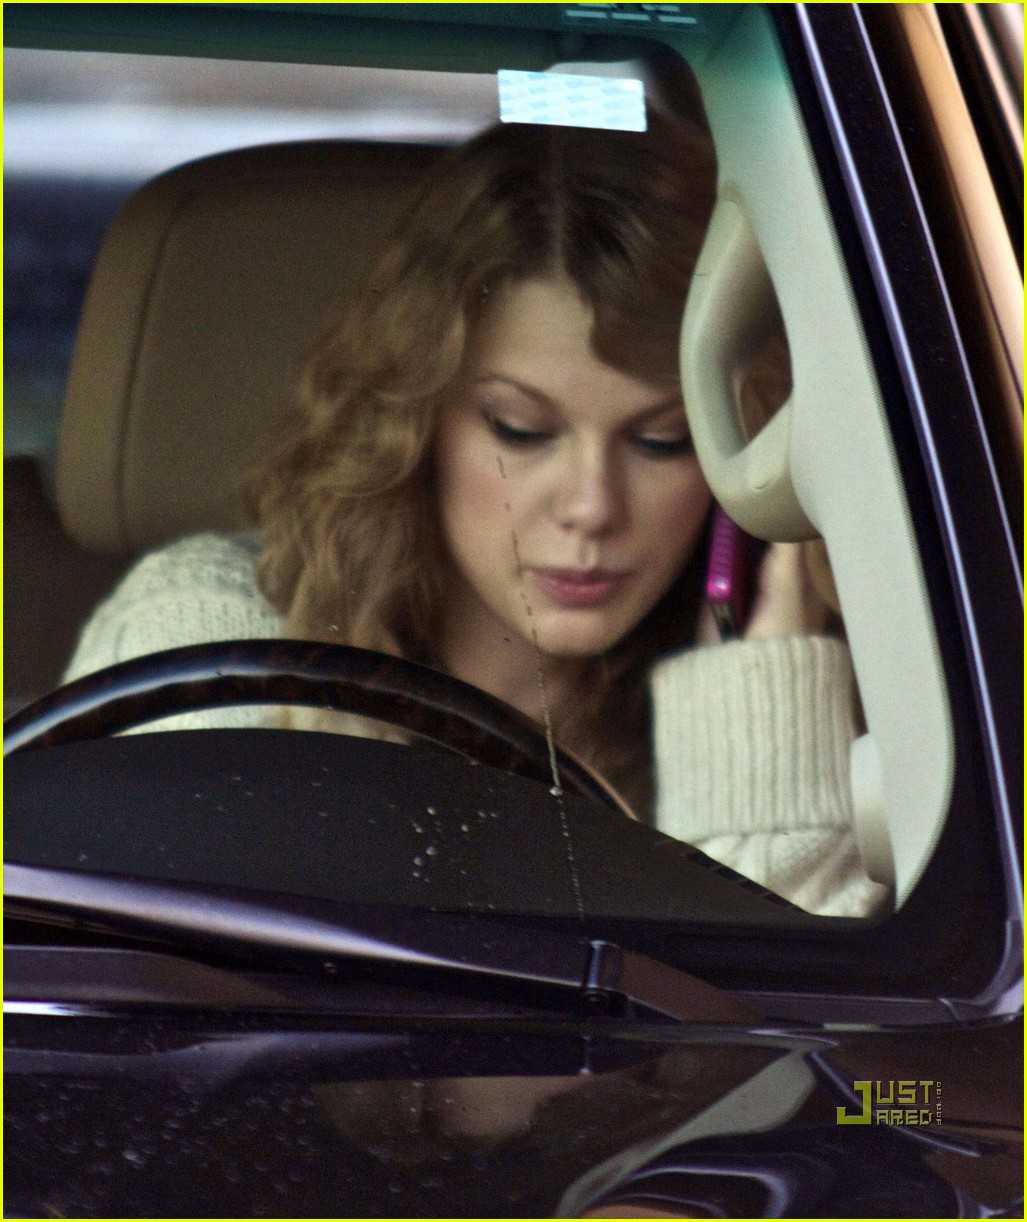 taylor swift phone call car 032513740